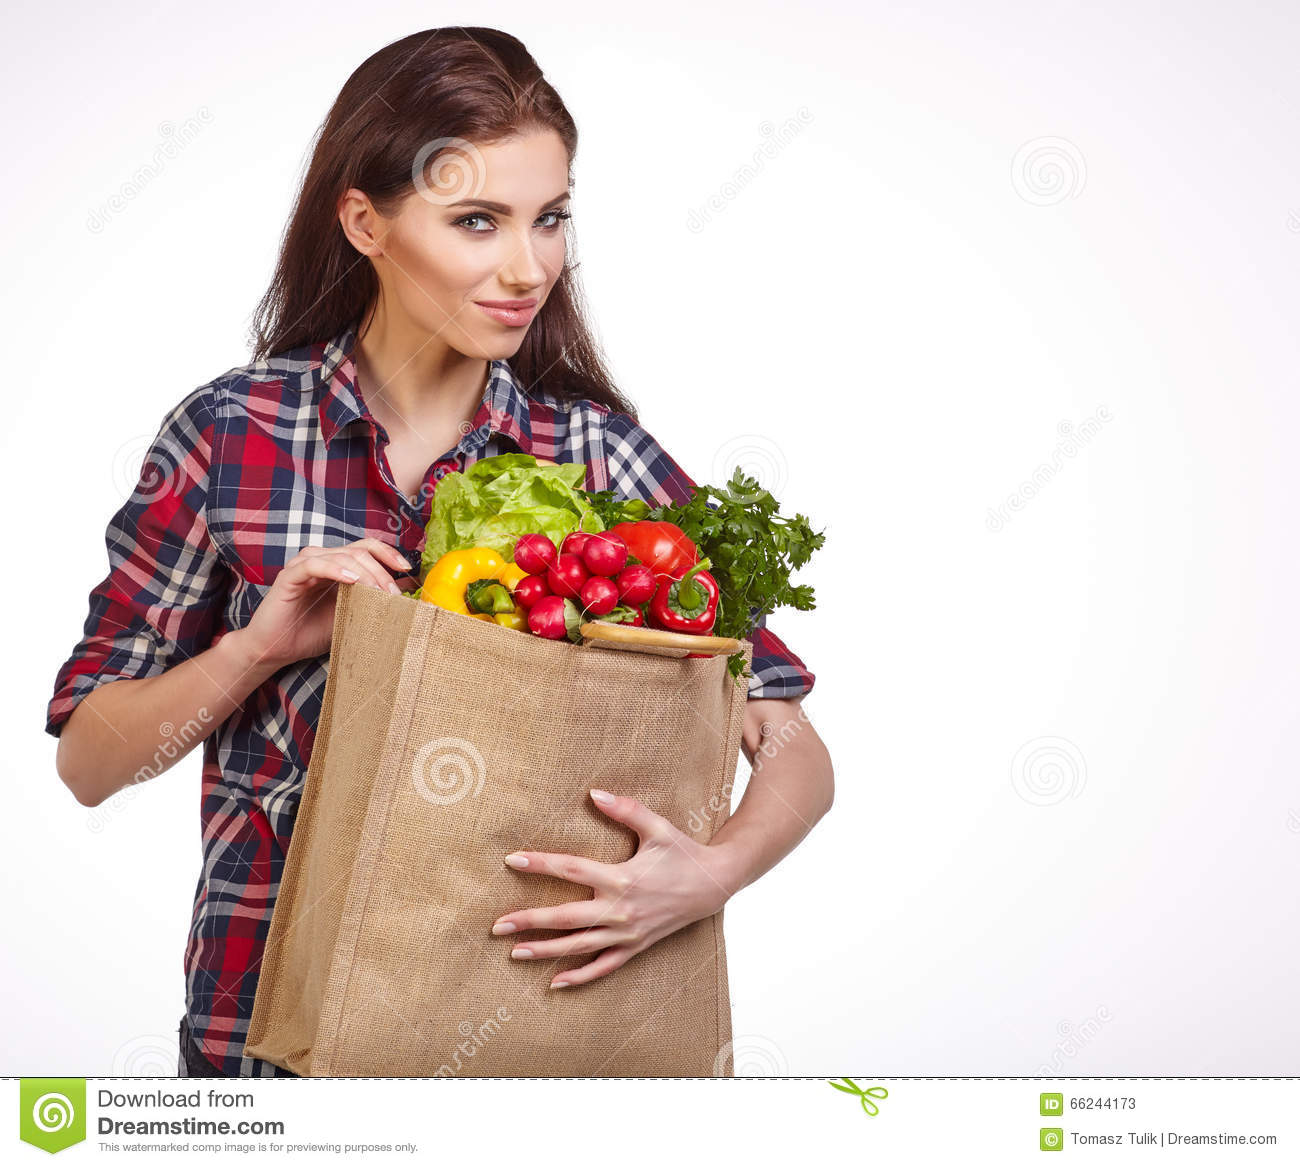 Woman with groceries shopping bag full of healthy vegetables smi